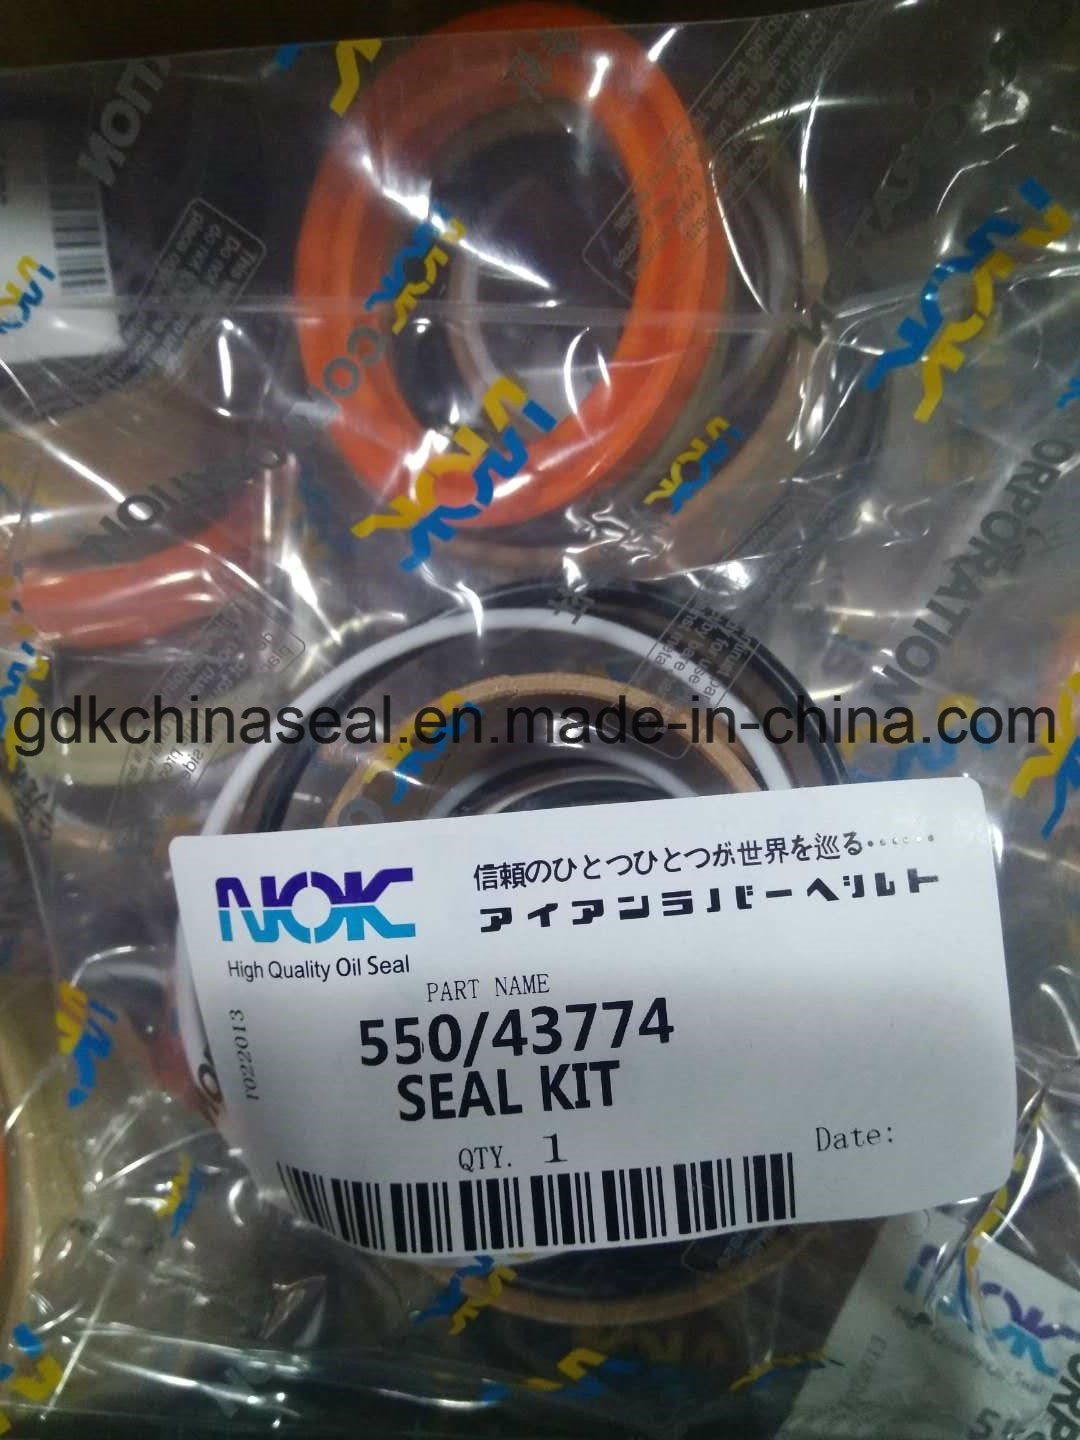 China Jcb Spare Parts Seal Kit for 3dx 550/43774 Photos & Pictures ...